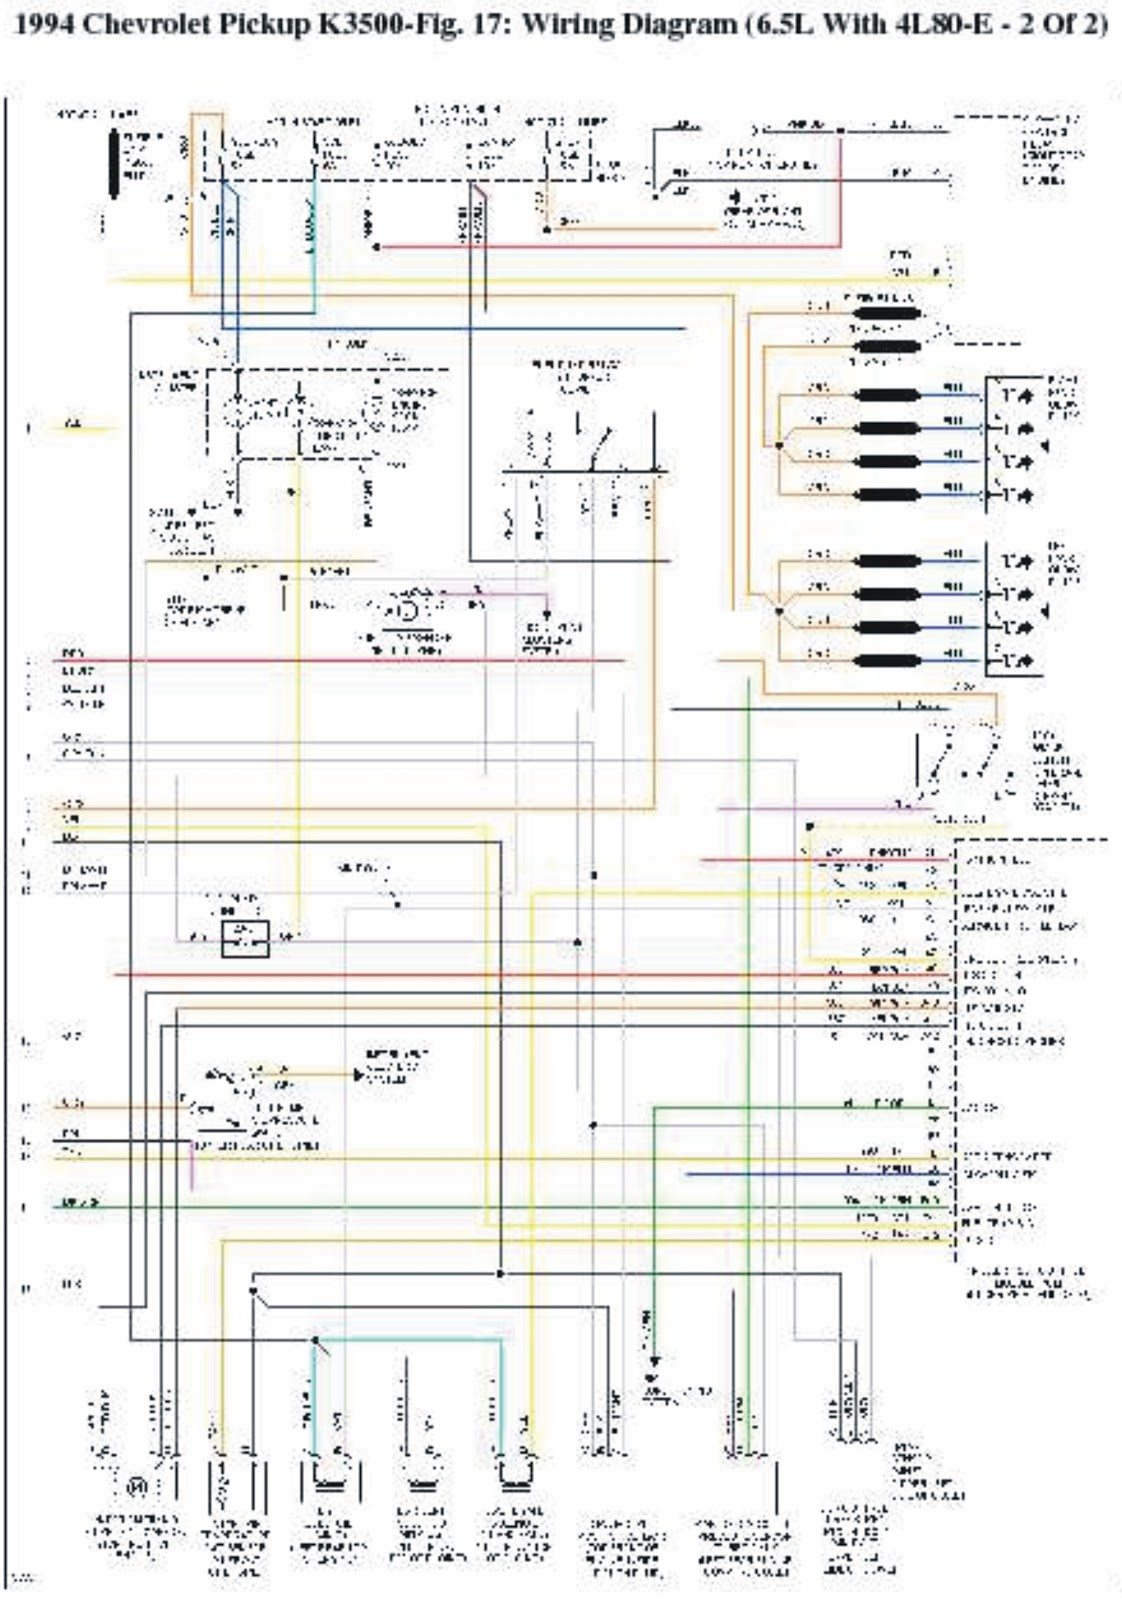 1994 chevrolet pick up k3500 wiring diagrams wiring diagrams center rh wiringdiagramsolution blogspot com 1999 chevy k3500 wiring diagram 1993 chevy k3500 wiring diagram